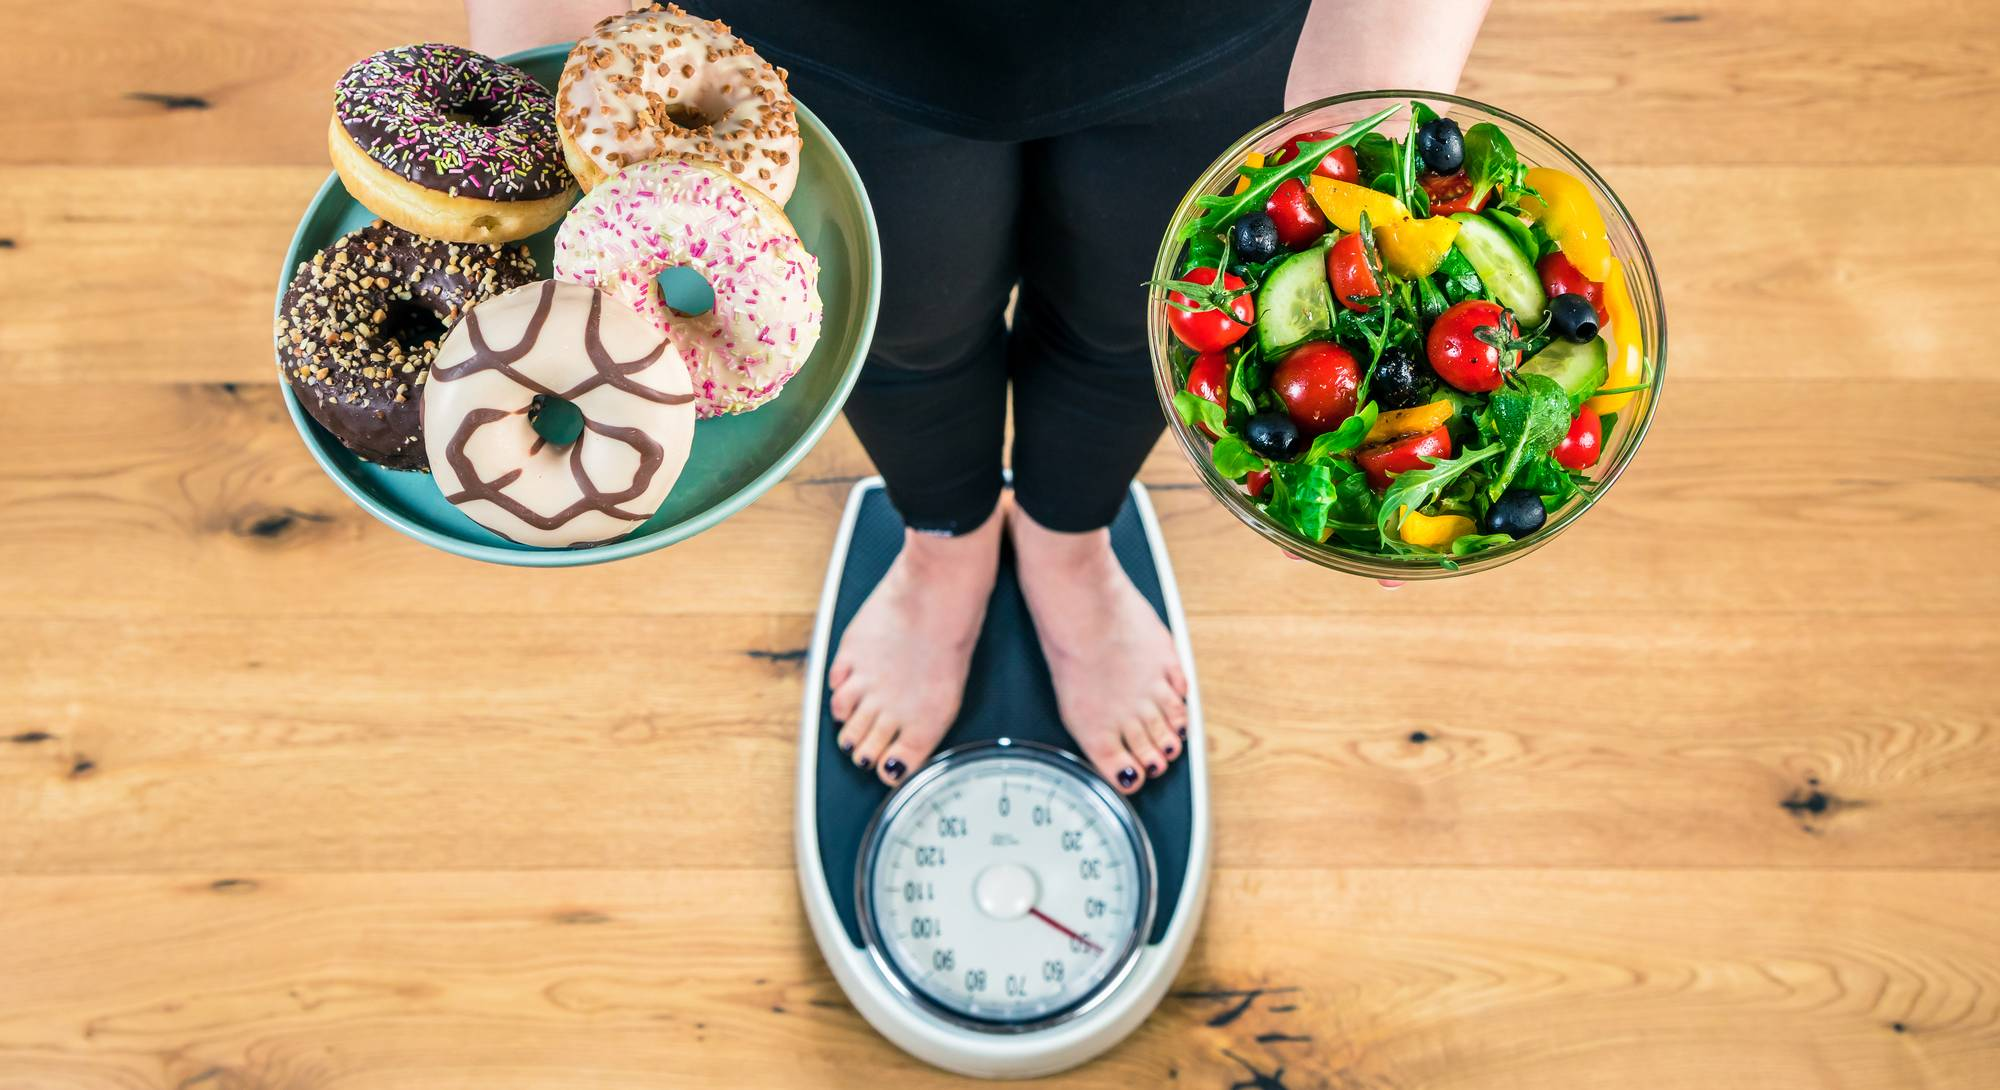 Make smart healthier choices to lose weight